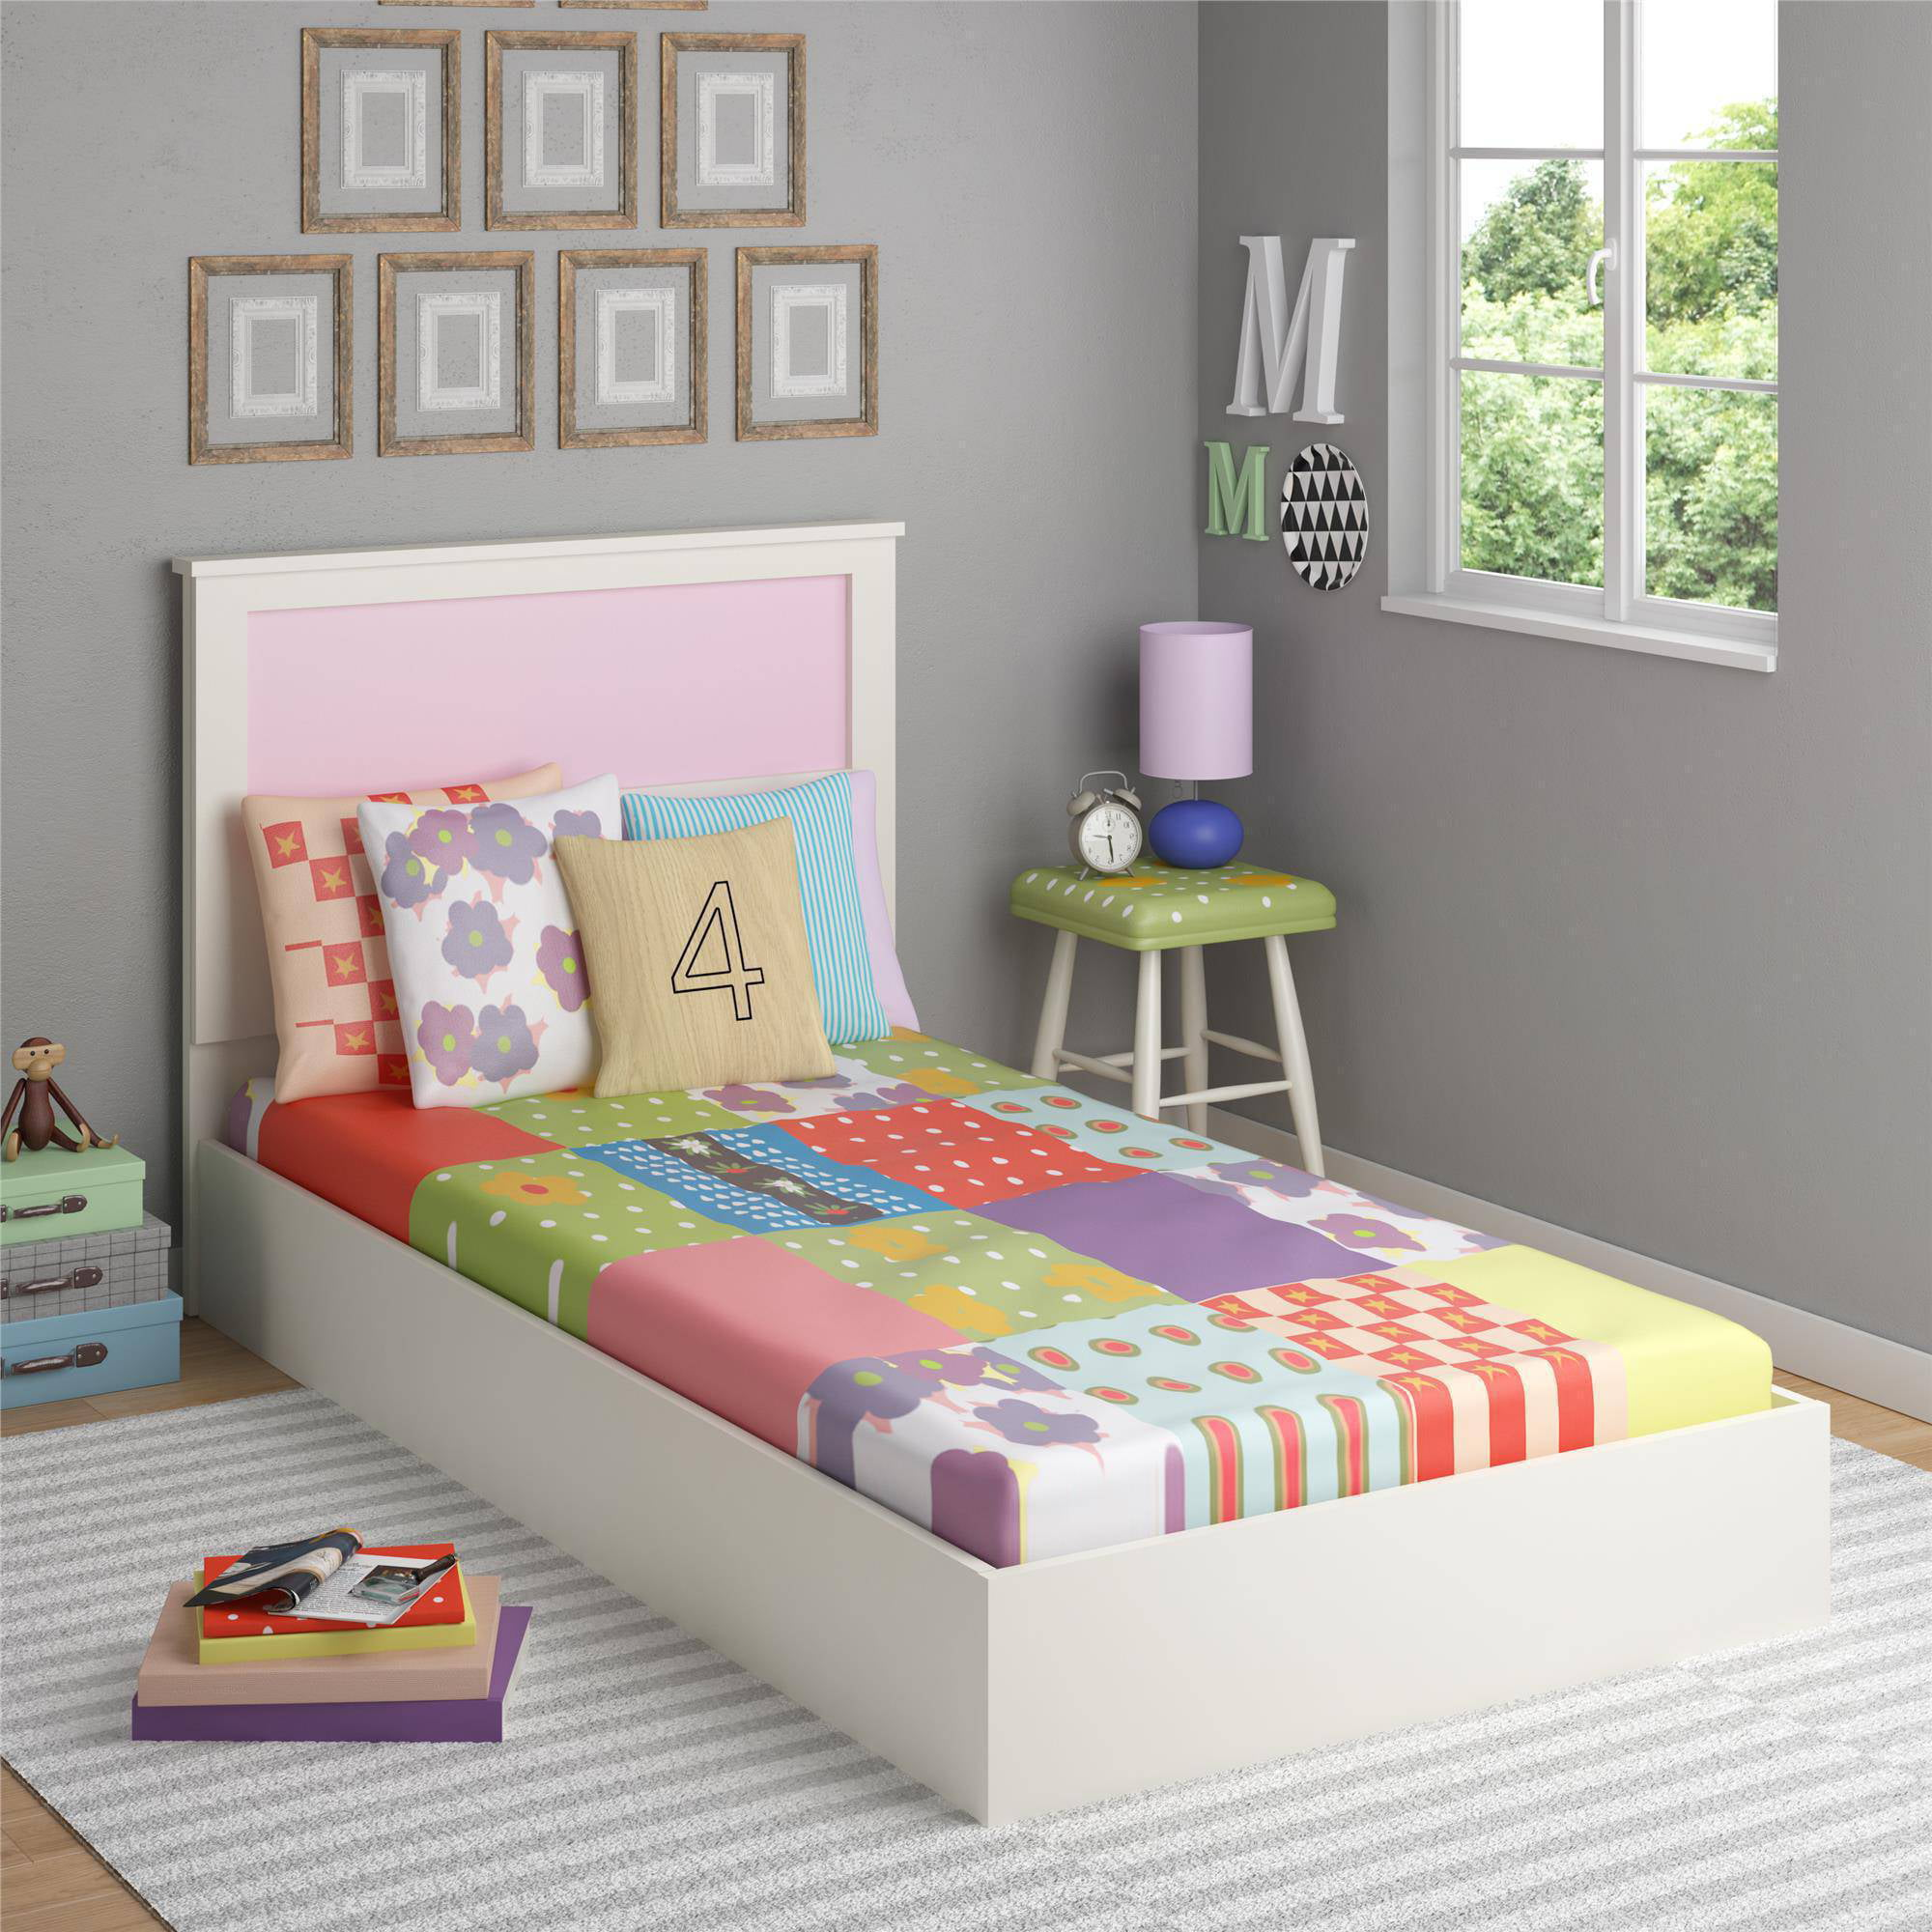 Ameriwood Home Skyler Bed, Twin, Multiple Colors, With Reversible